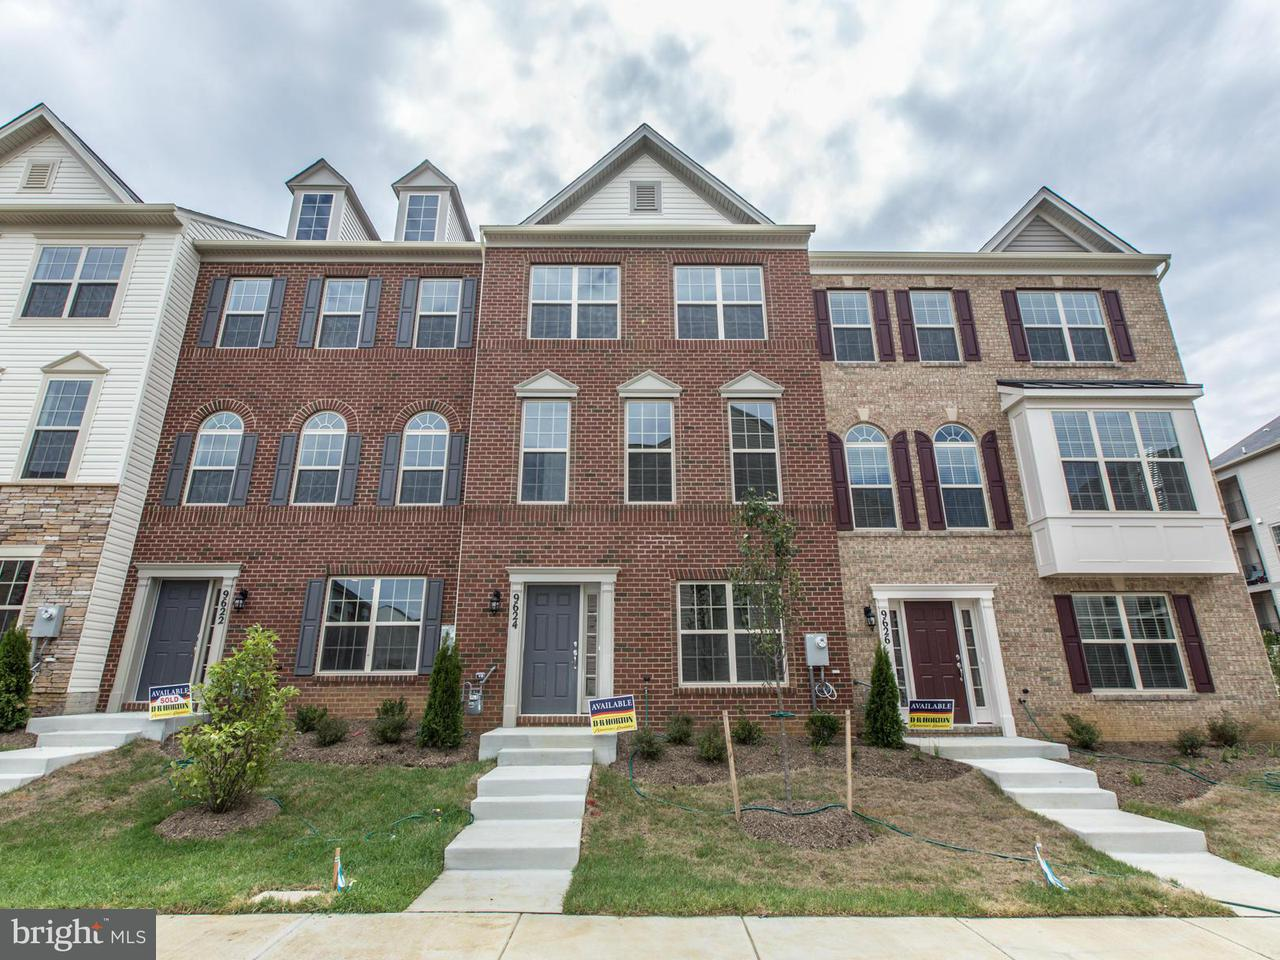 Single Family for Sale at 9408 Smithview Pl Glenarden, Maryland 20706 United States